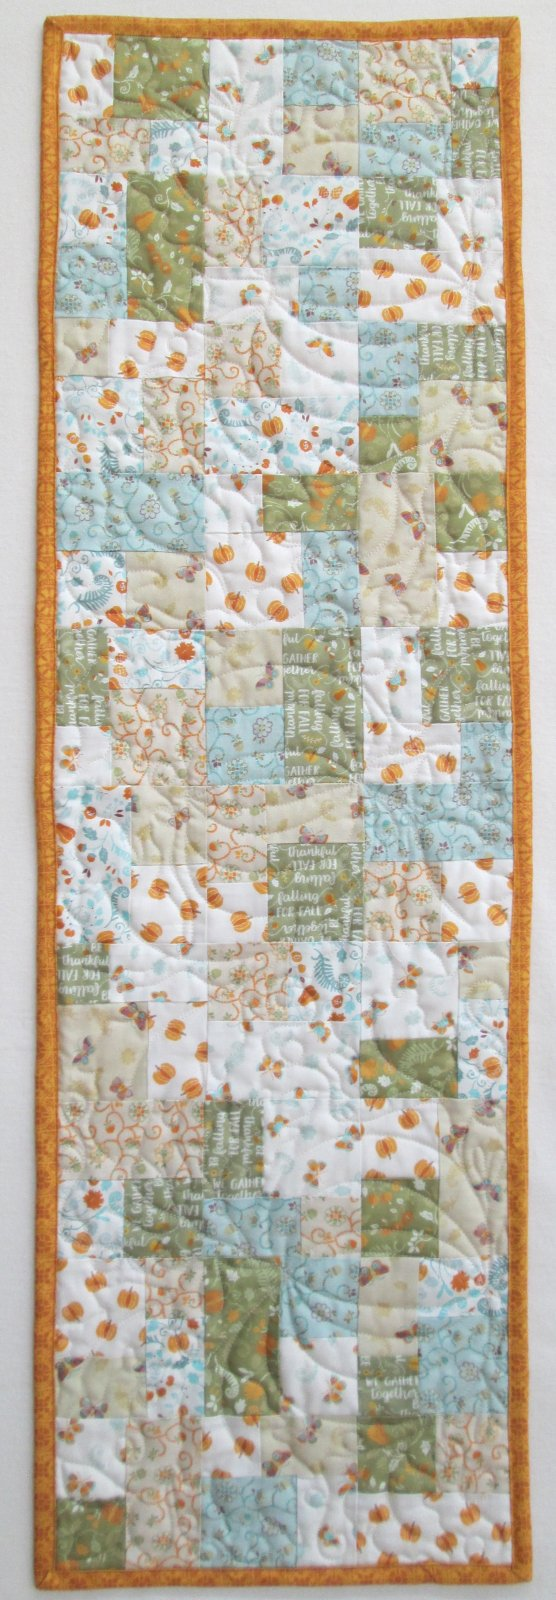 Autumn Impressions Mini Brick Road Table Runner KIT